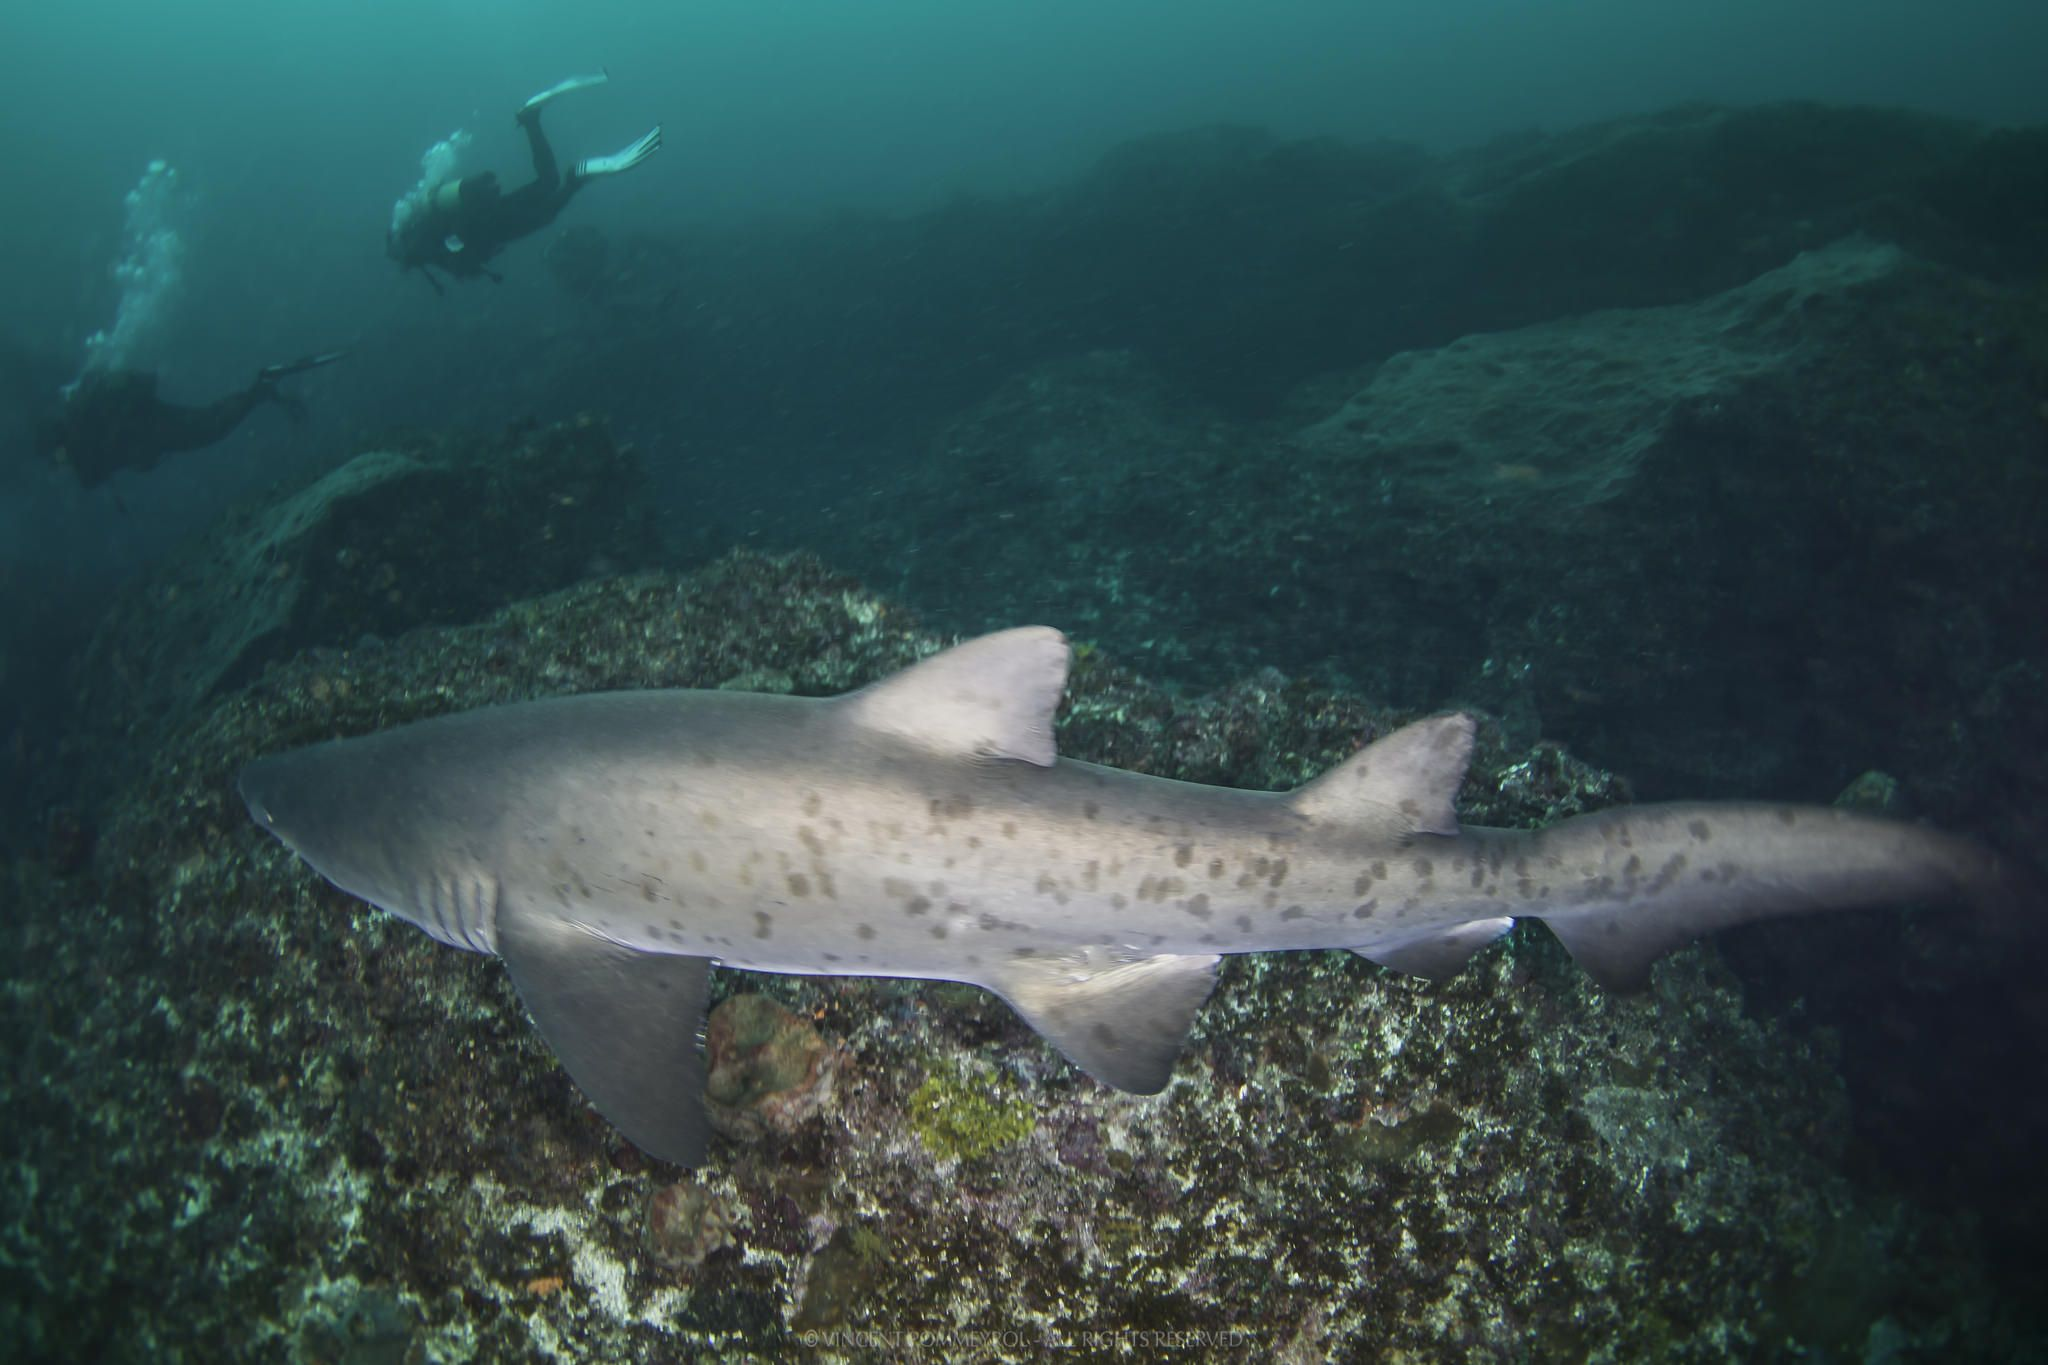 https://flic.kr/p/VPKNEN | Carcharias taurus | Sand tiger shark - Requin taureau (Carcharias taurus) South Africa.  UNDERWATER & NATURE PHOTOGRAPHY - For Art Prints and Download